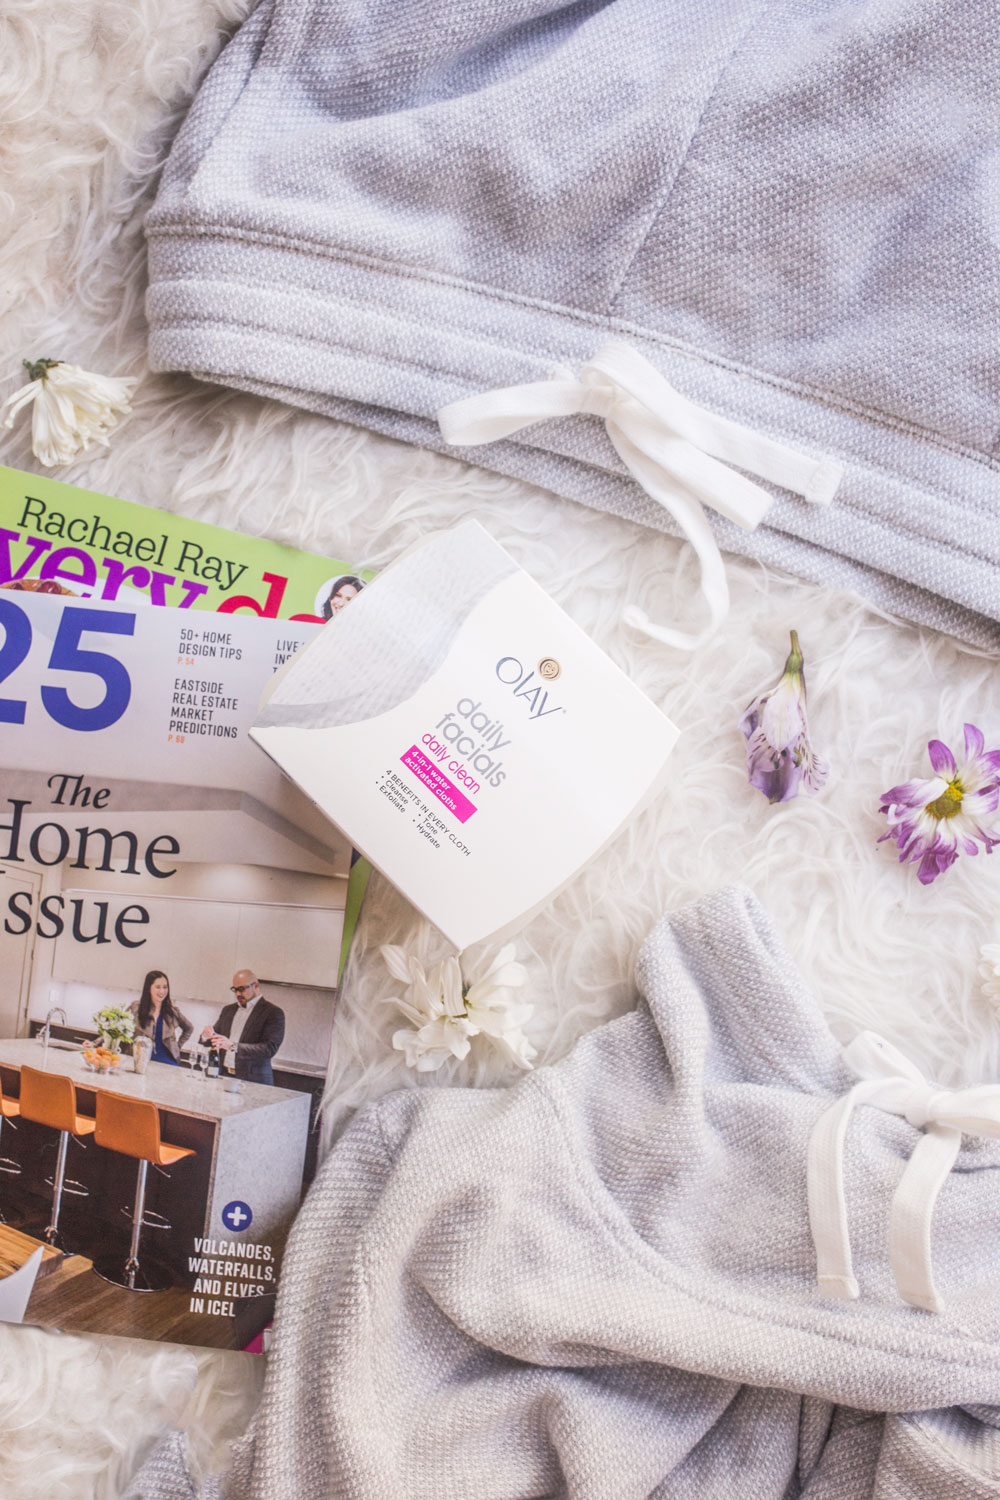 Olay Daily Facials Night Time Routine // Hello Rigby Seattle Lifestyle Blog